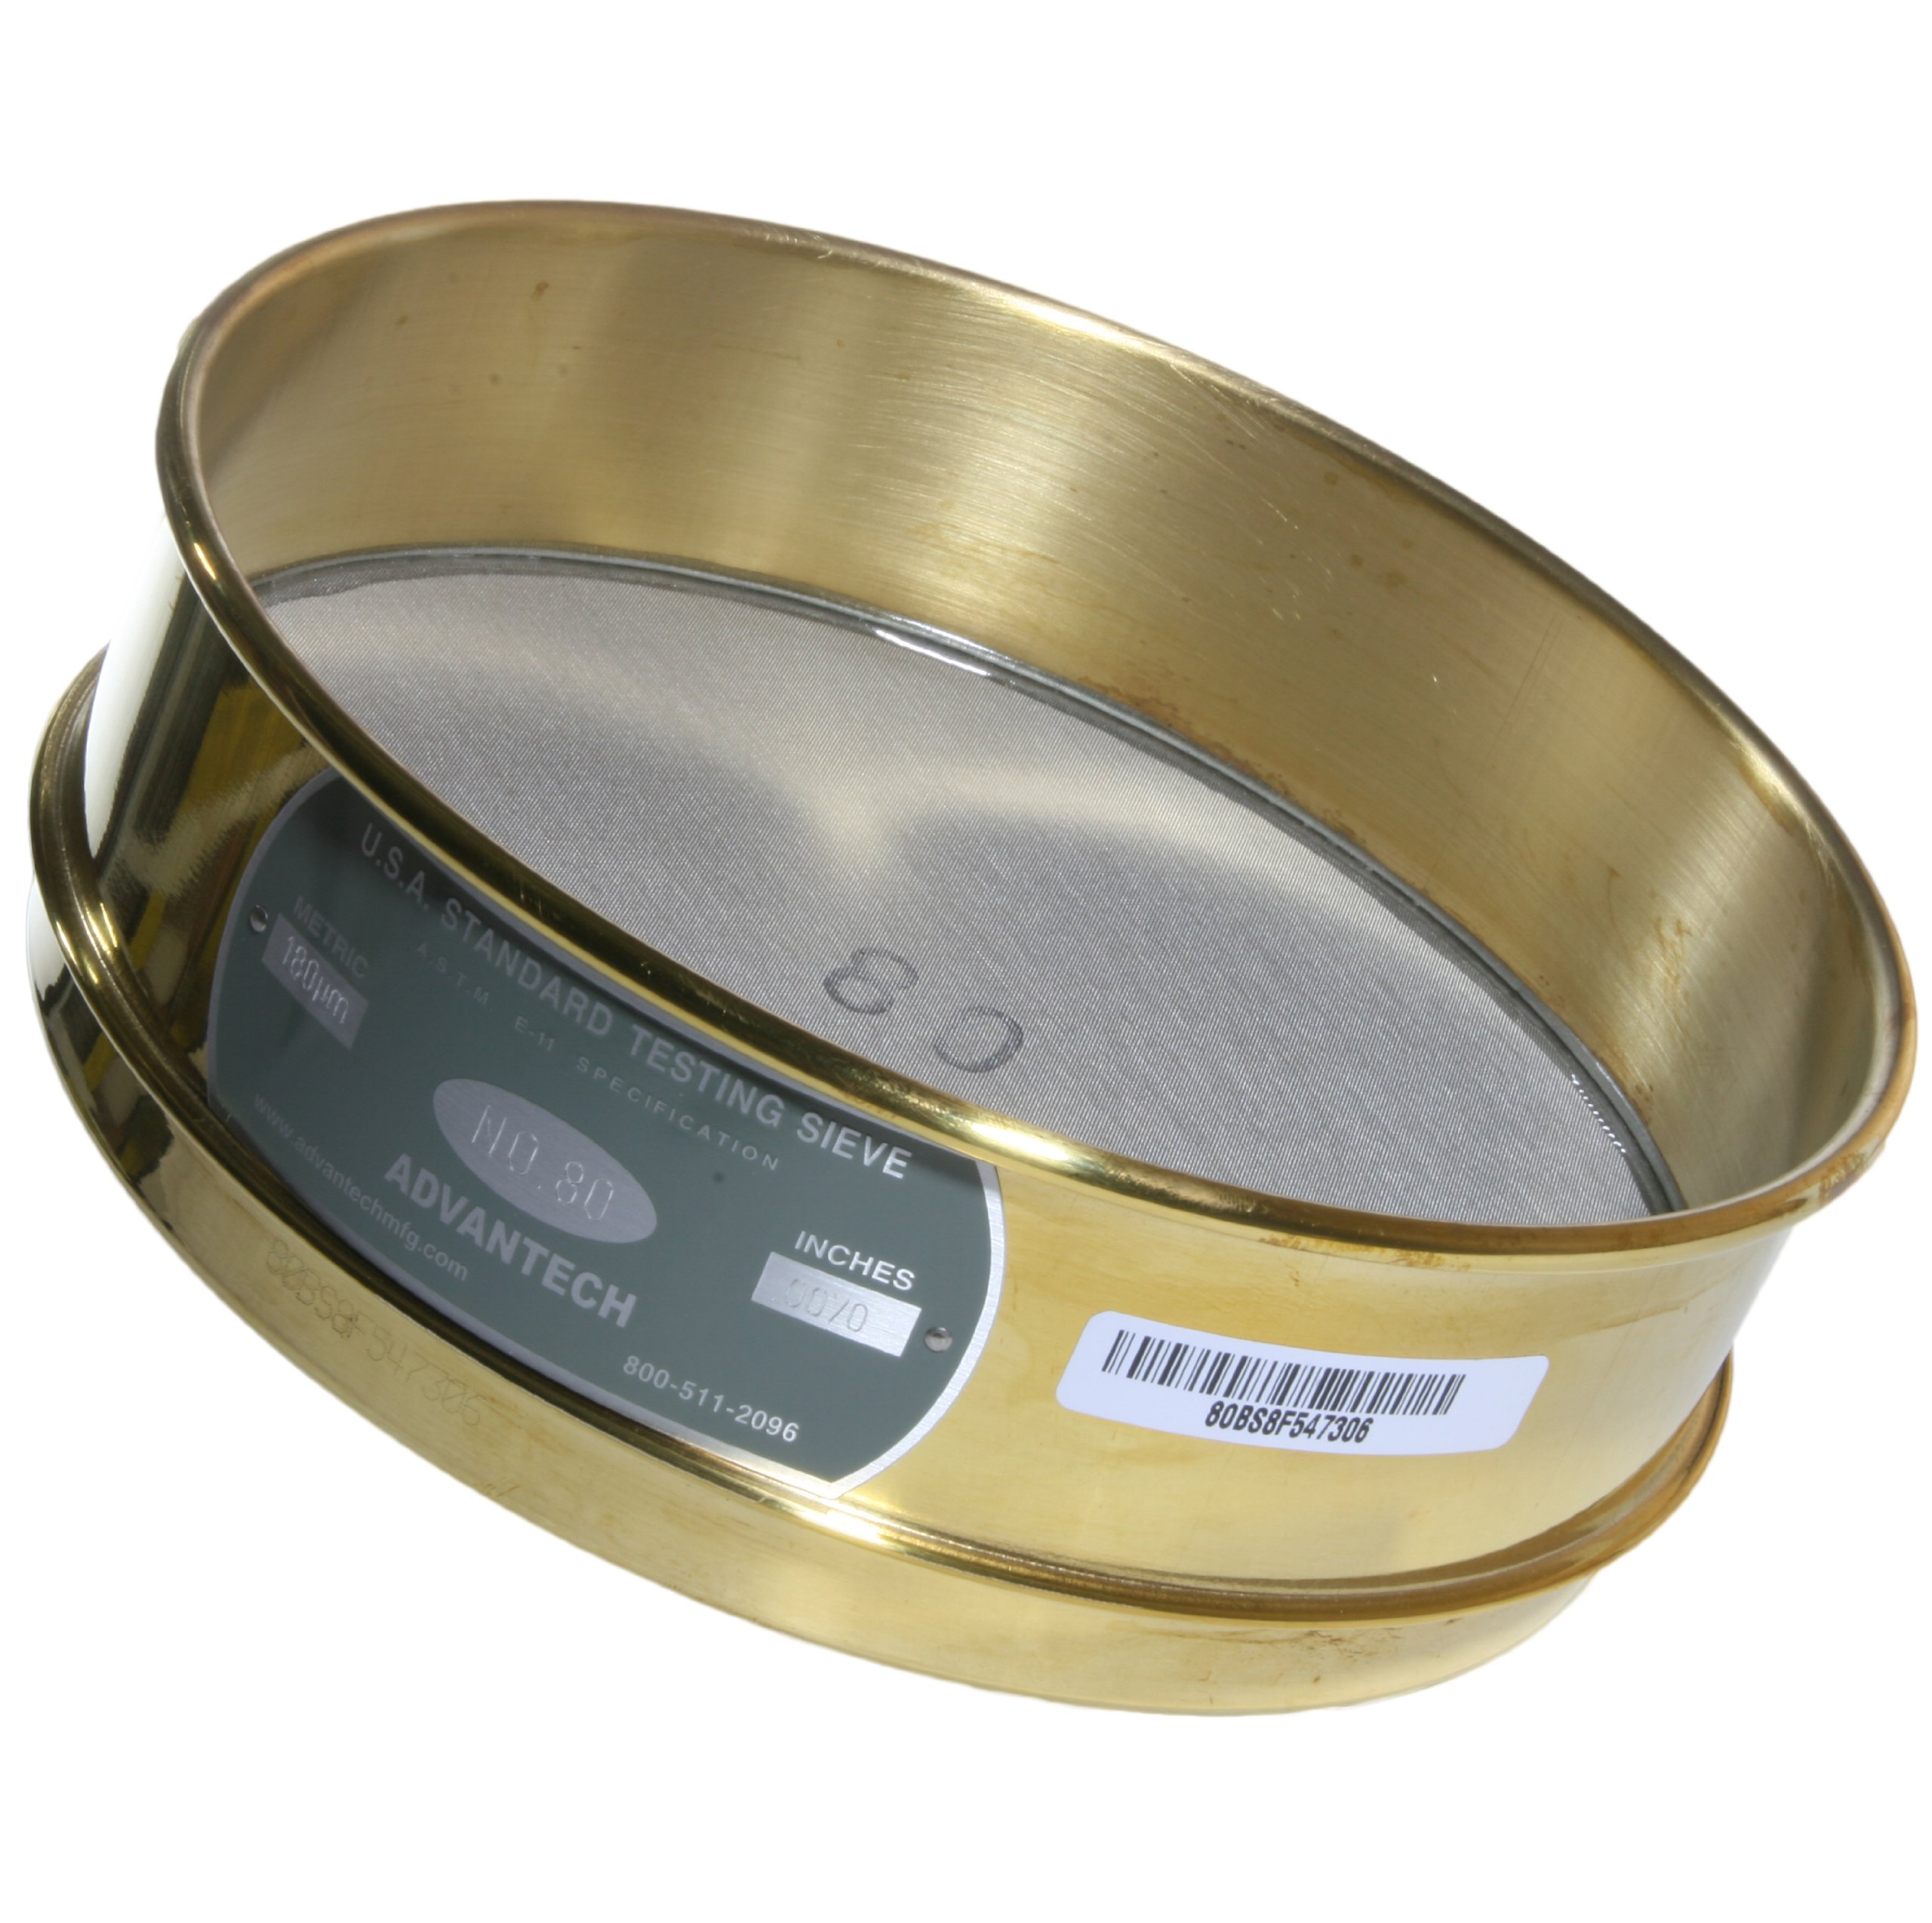 Advantech Brass Test Sieves, 8'' Diameter, #80 Mesh, Full Height by Advantech